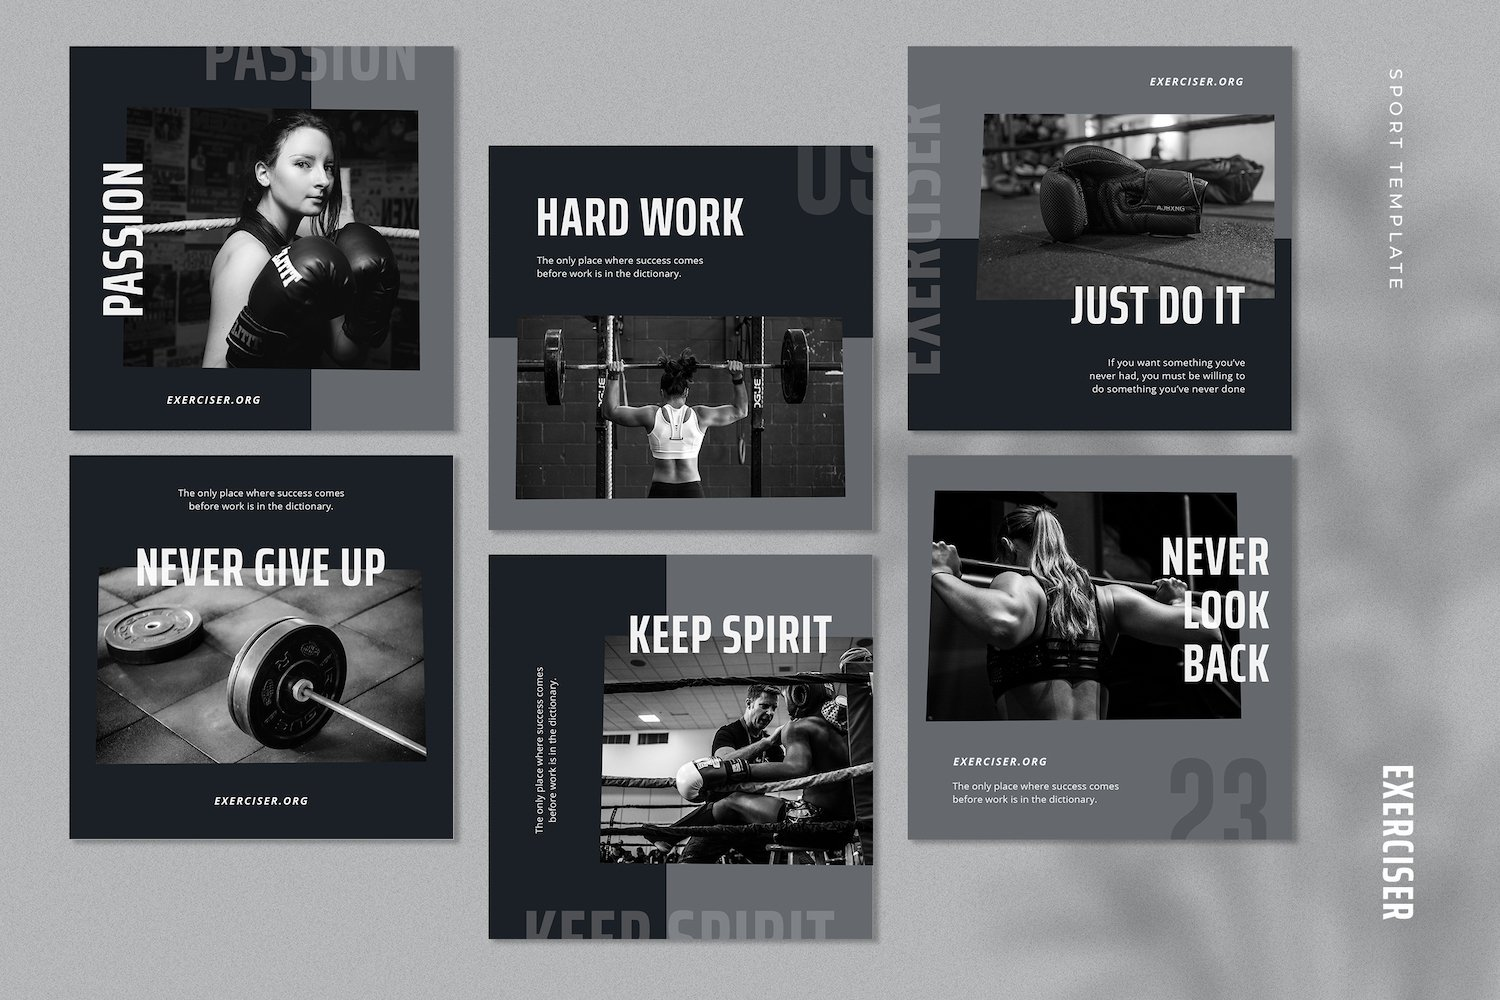 Exerciser - Gym & Fitness Instagram Post Template example image 3